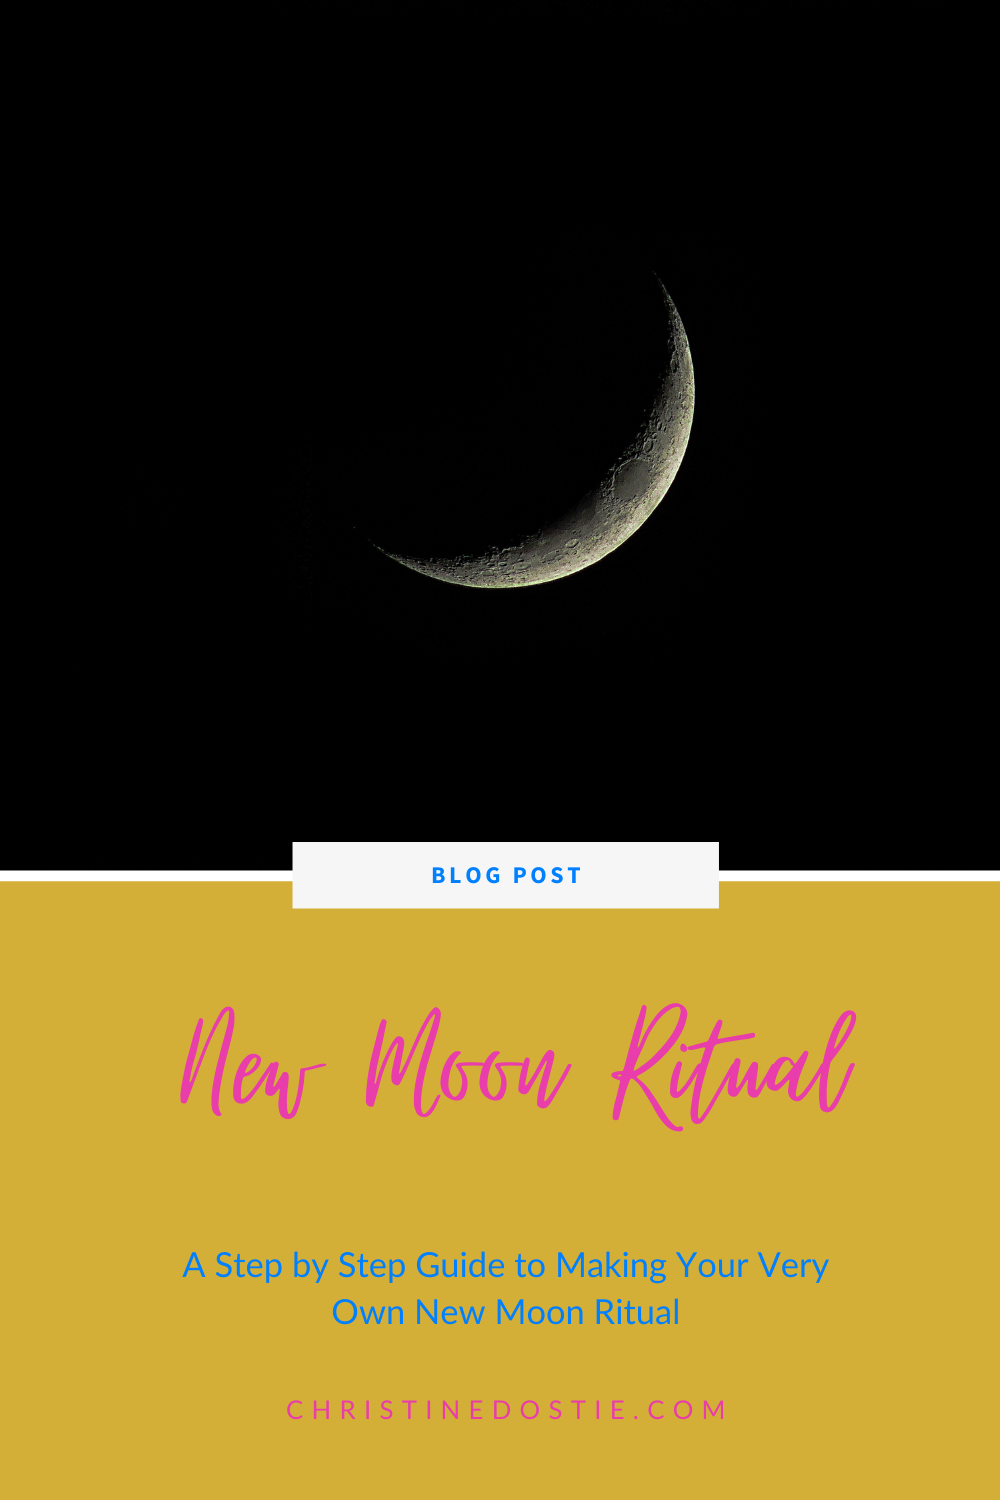 A guide to creating a ritual for the New Moon and manifest the life you desire!